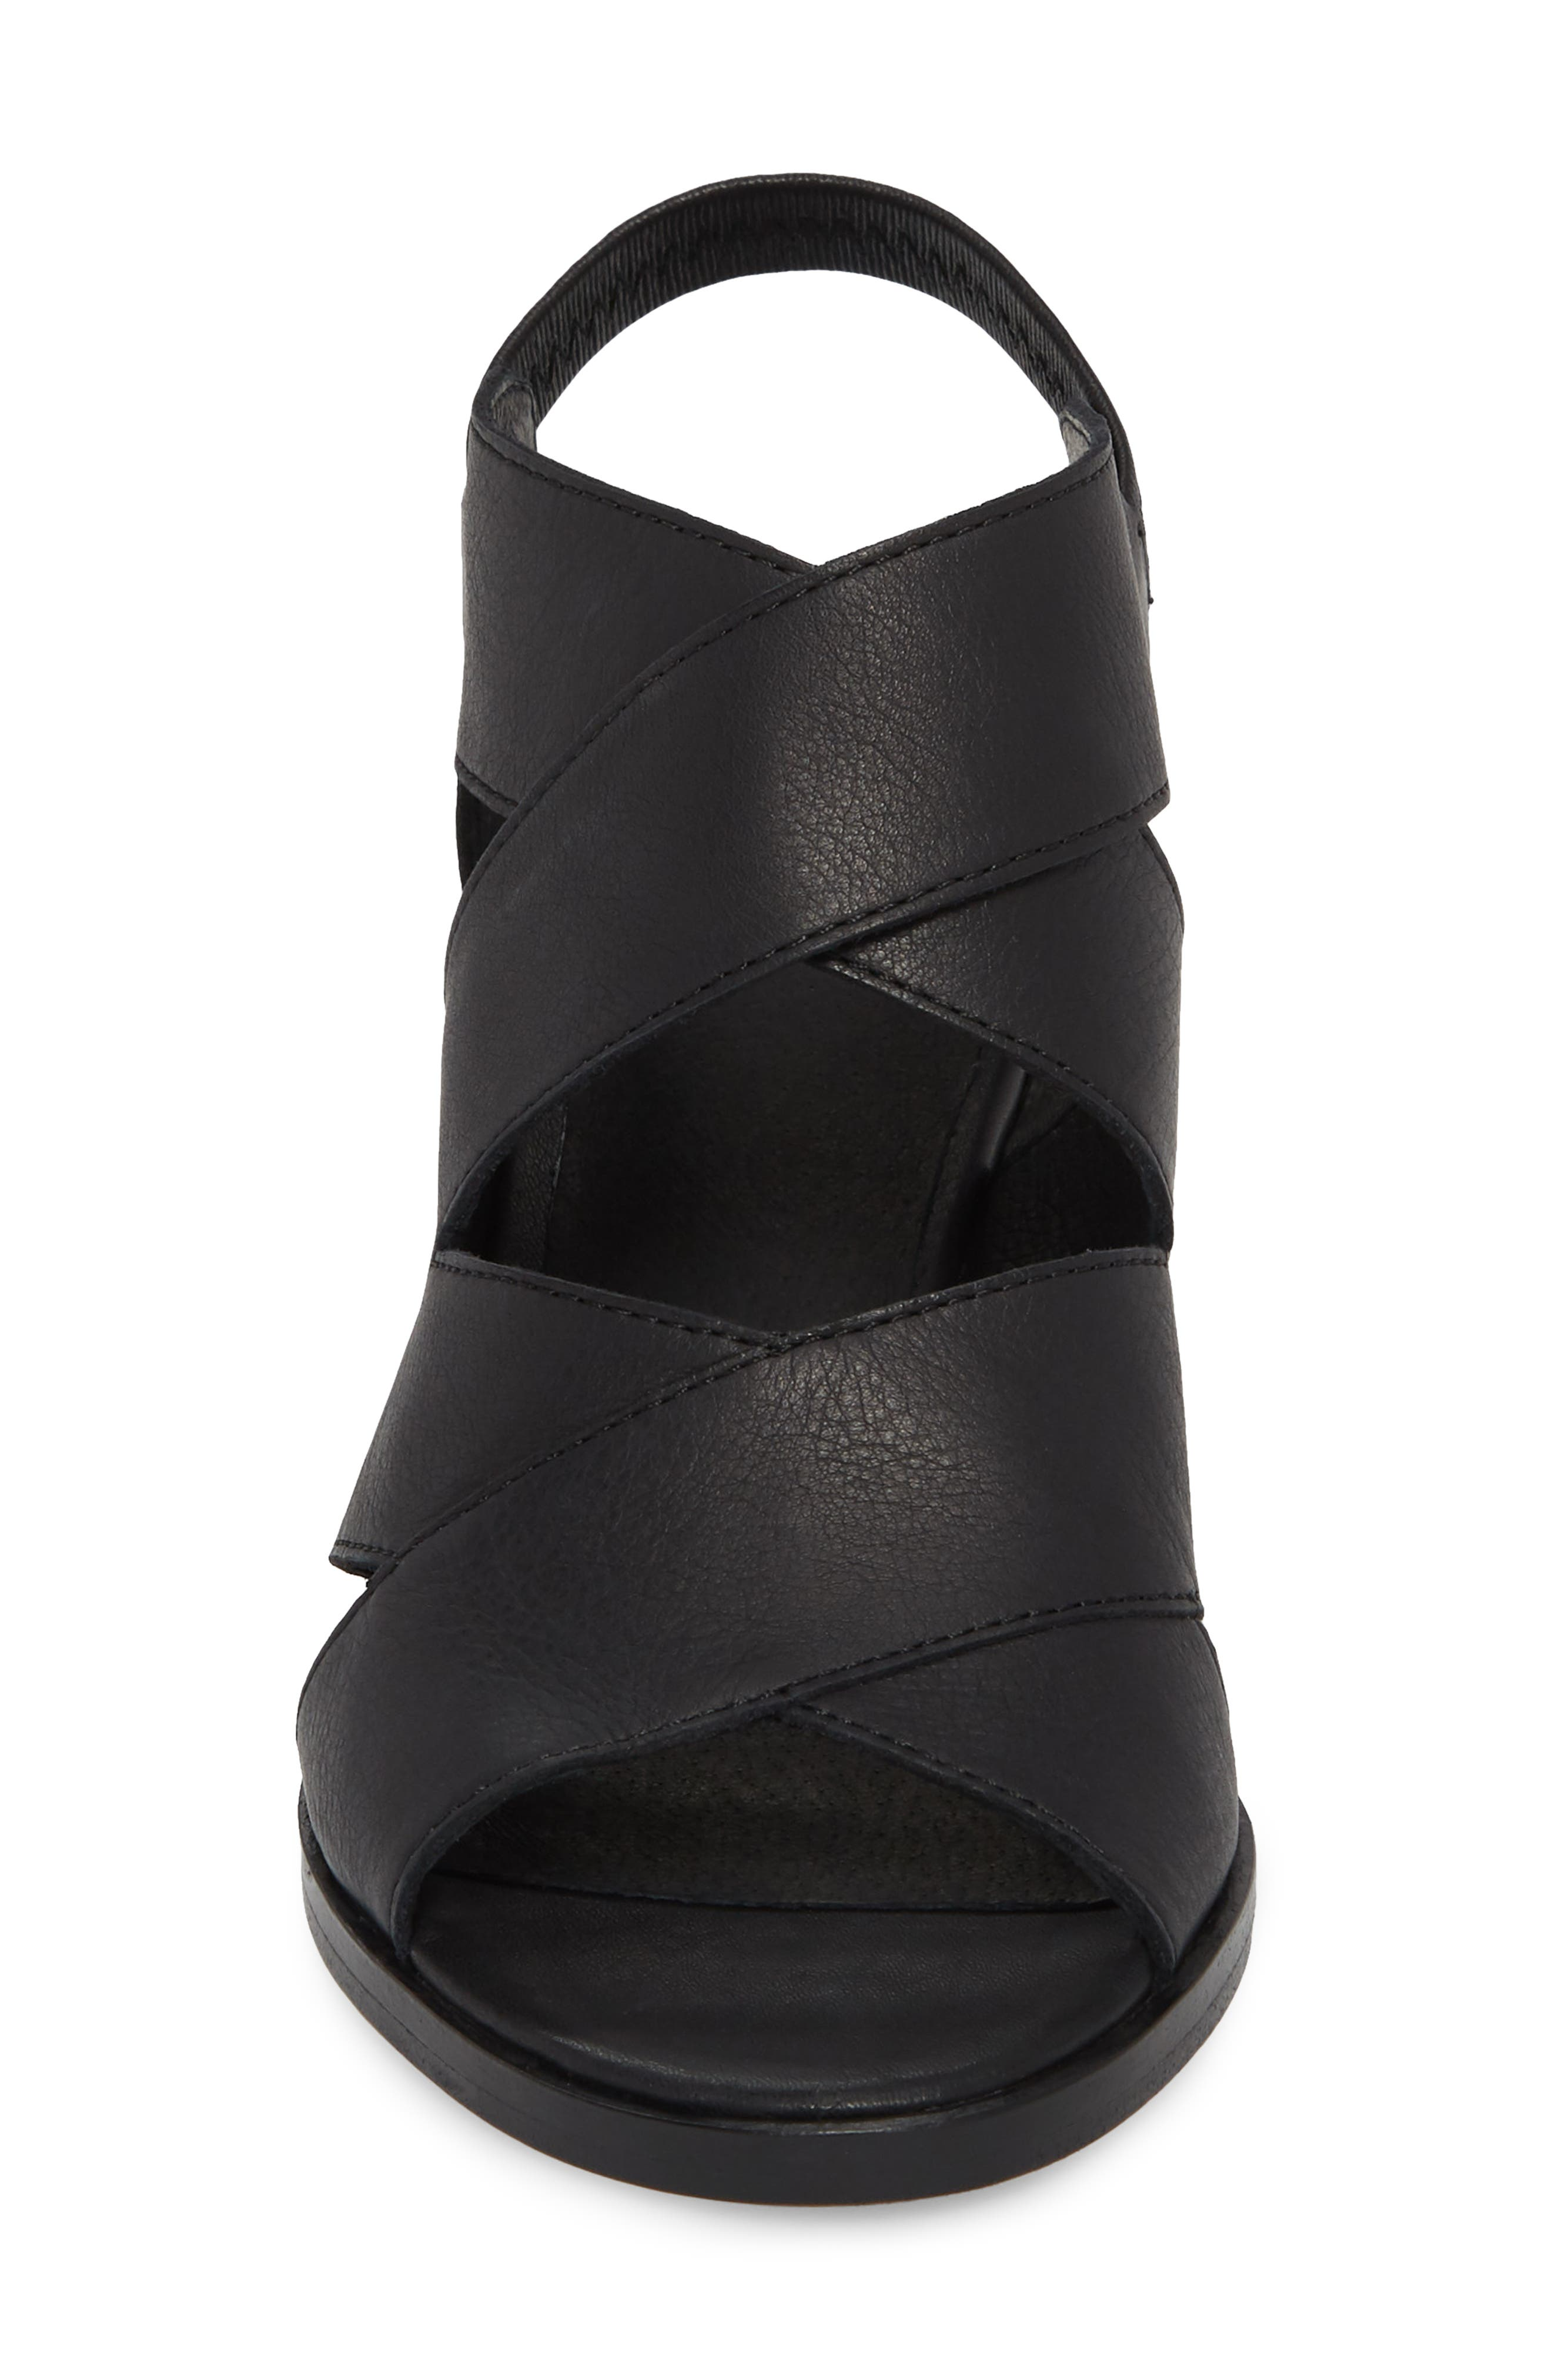 Rai Sandal,                             Alternate thumbnail 4, color,                             Black Leather